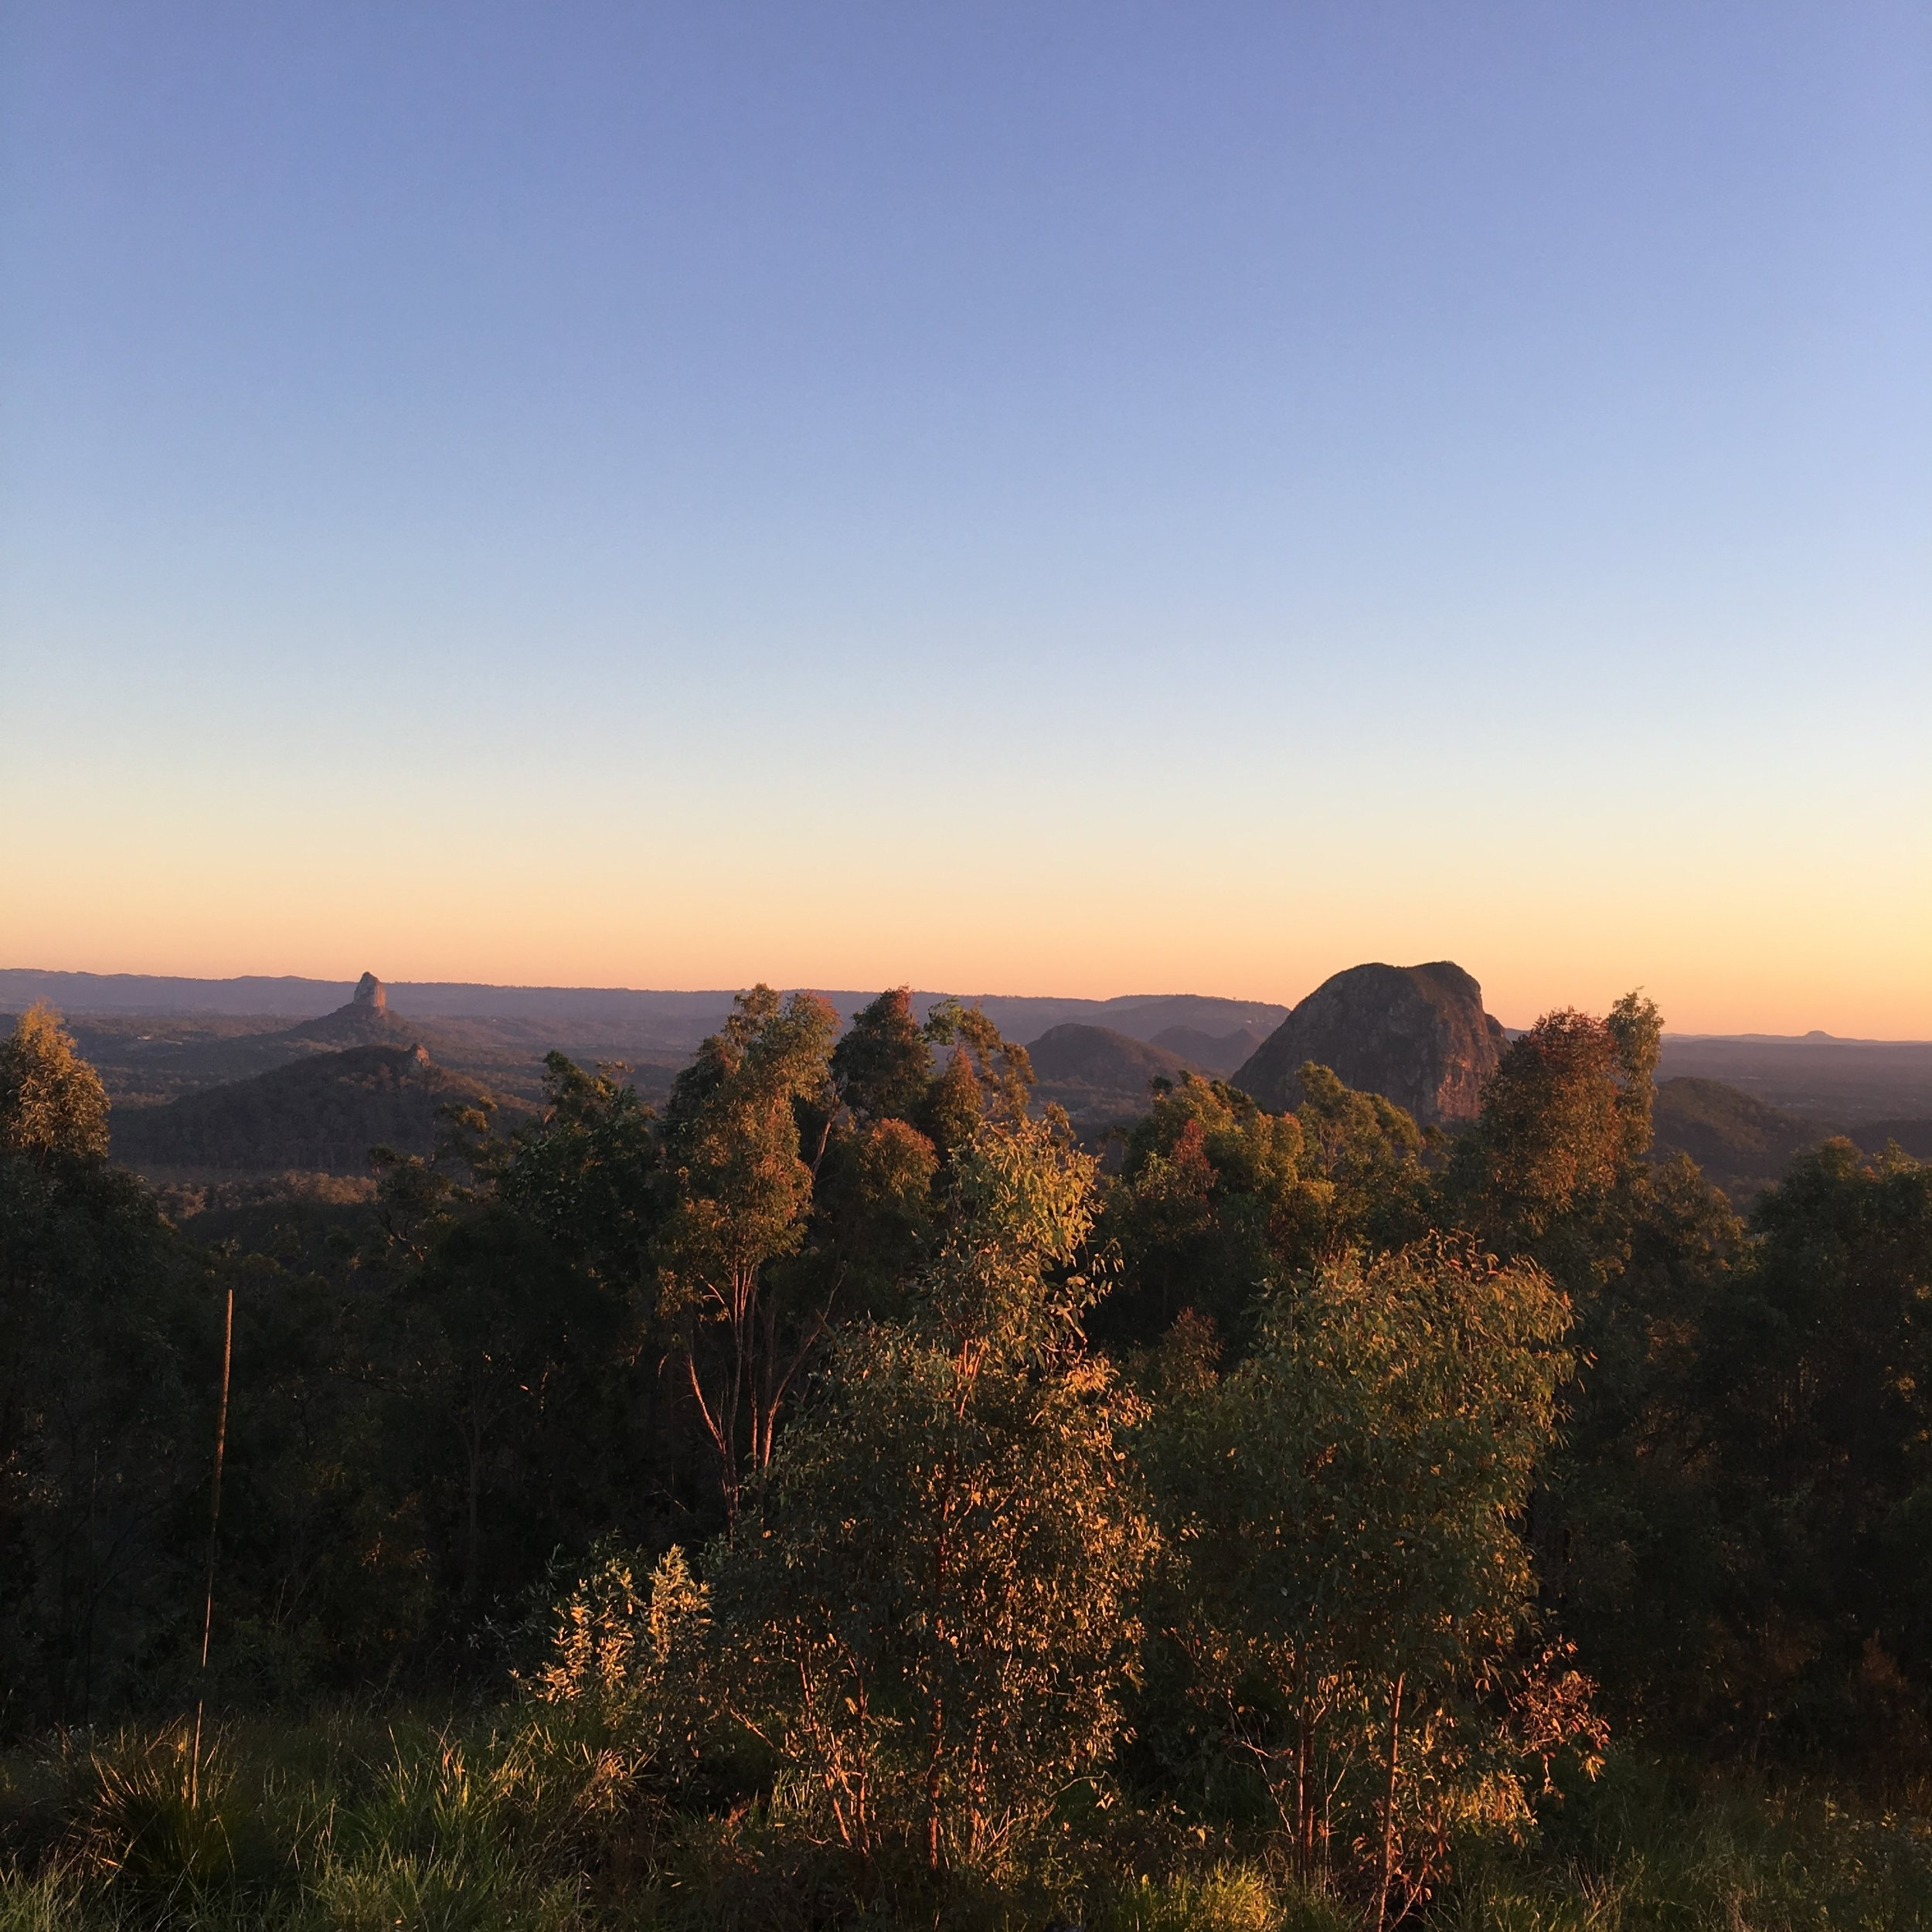 The view of the Glasshouse Mountains